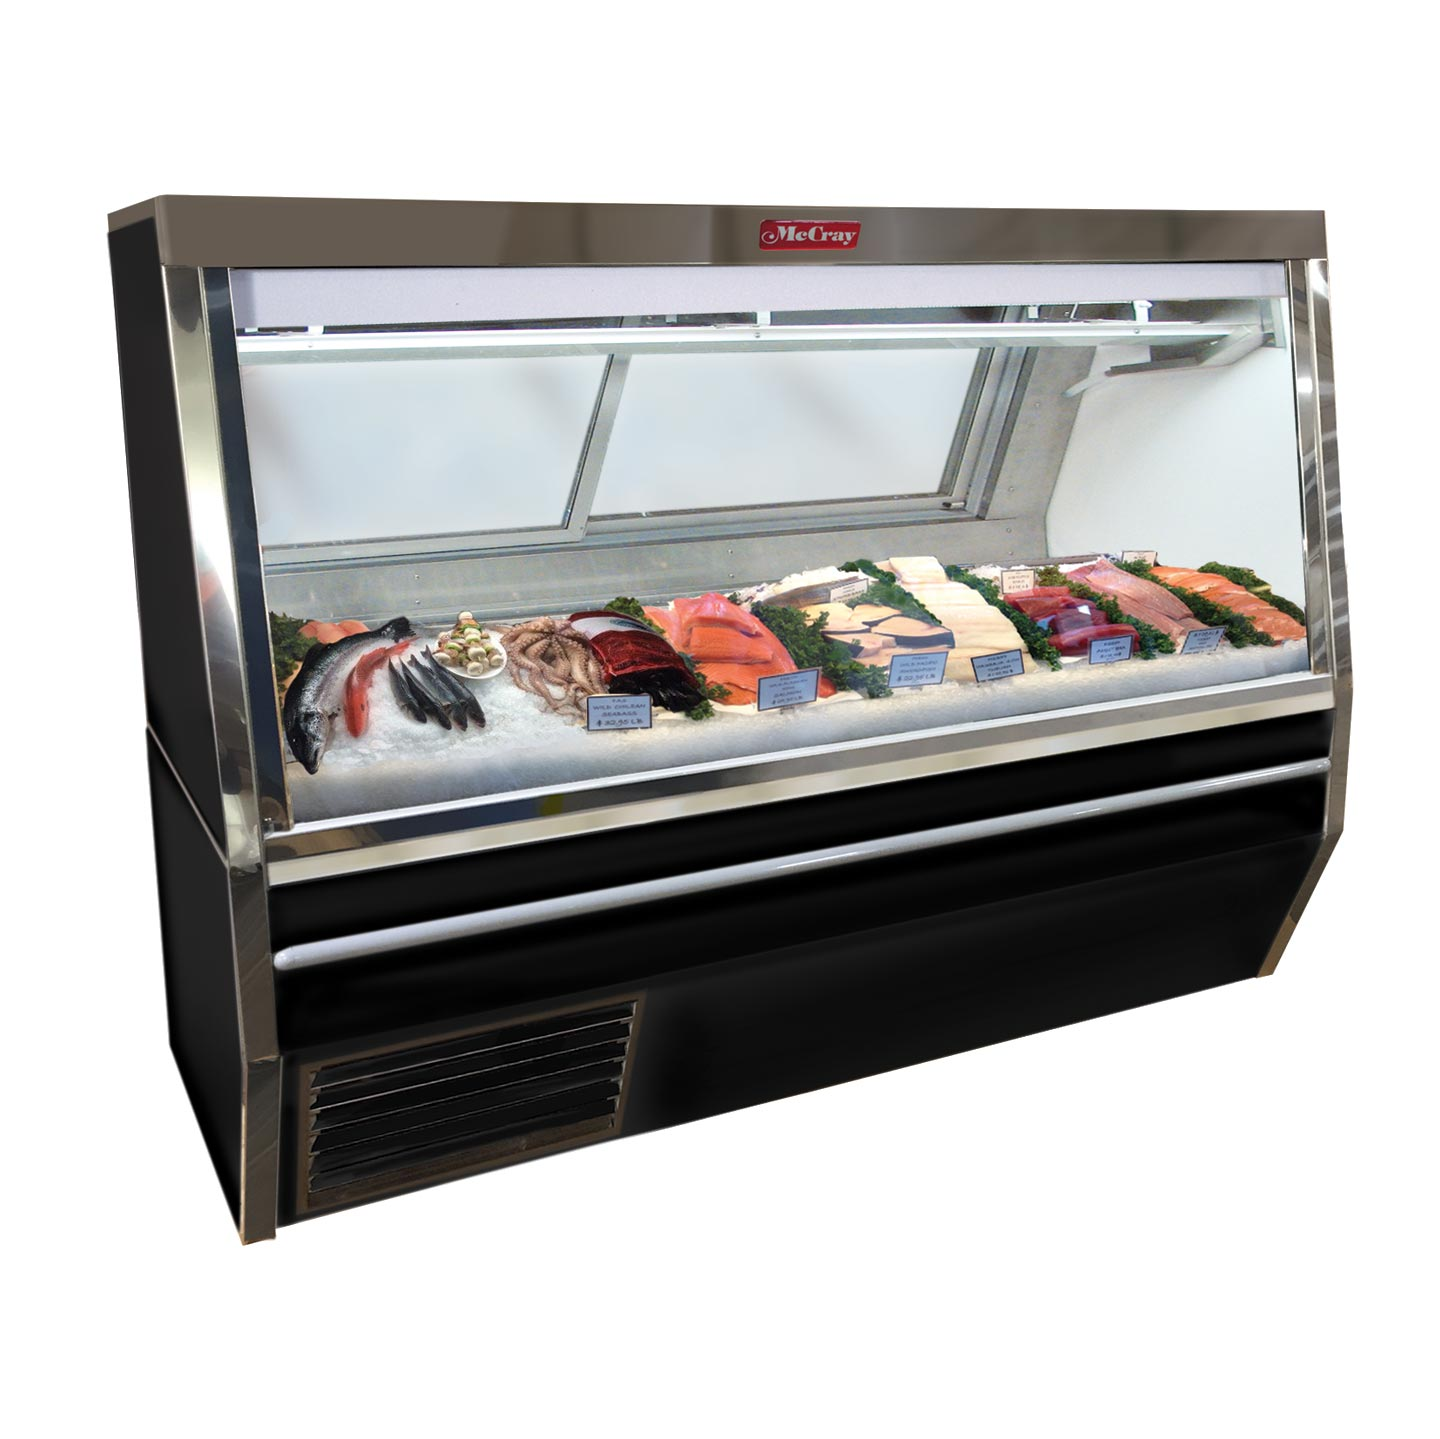 Howard-McCray SC-CFS34N-4-BE-LED display case, deli seafood / poultry